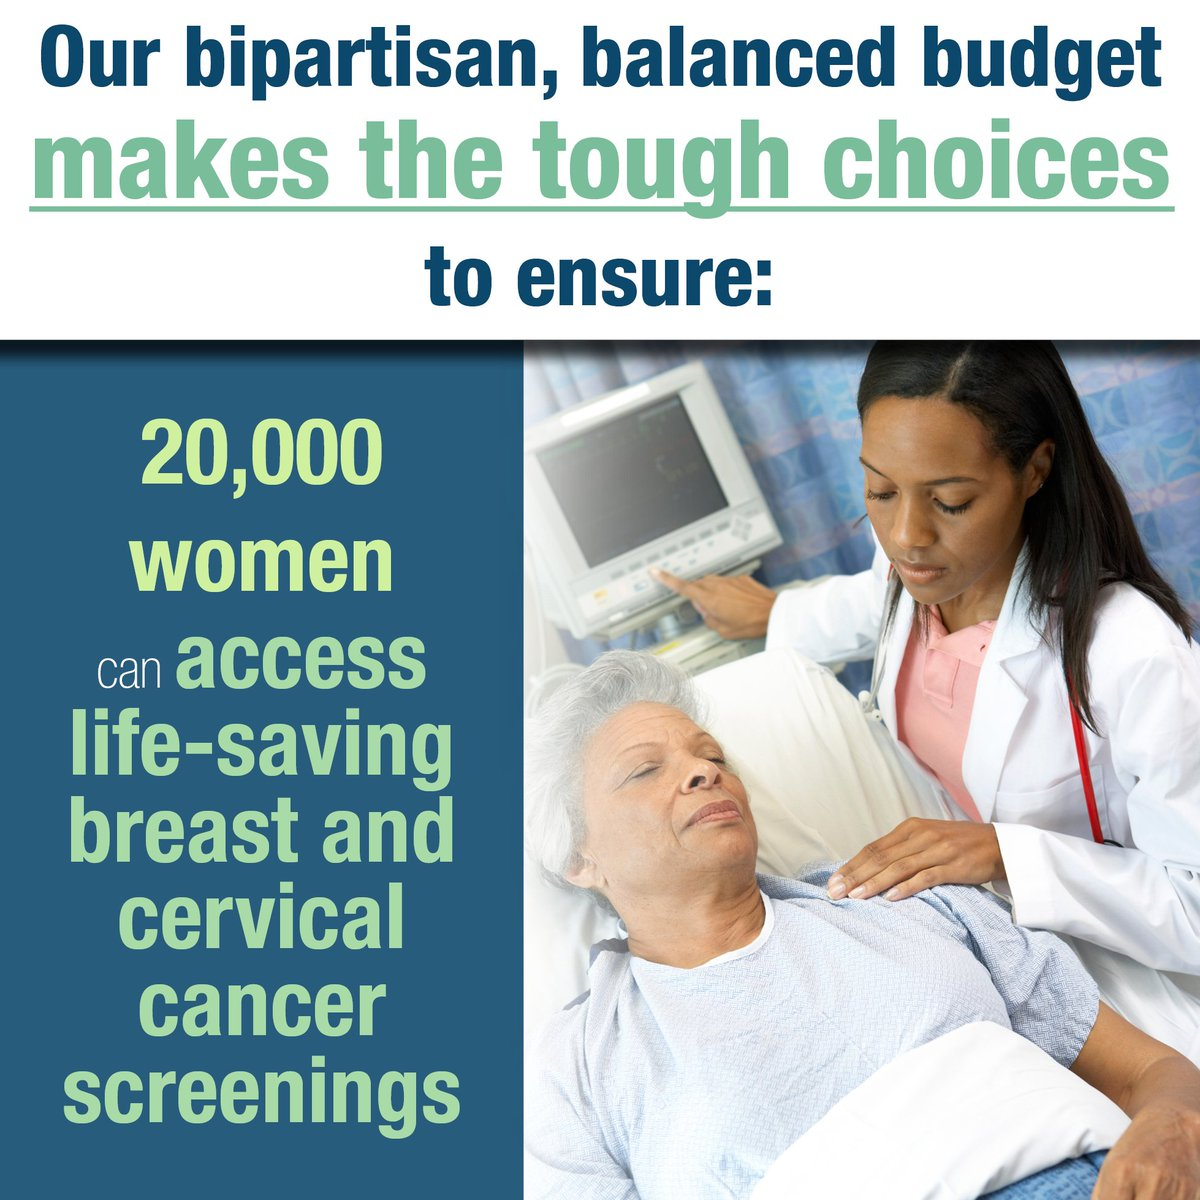 test Twitter Media - We did our jobs and enacted a bipartisan, balanced budget to ensure women have access to life-saving cancer screenings. #twill https://t.co/b8IhaPQx20